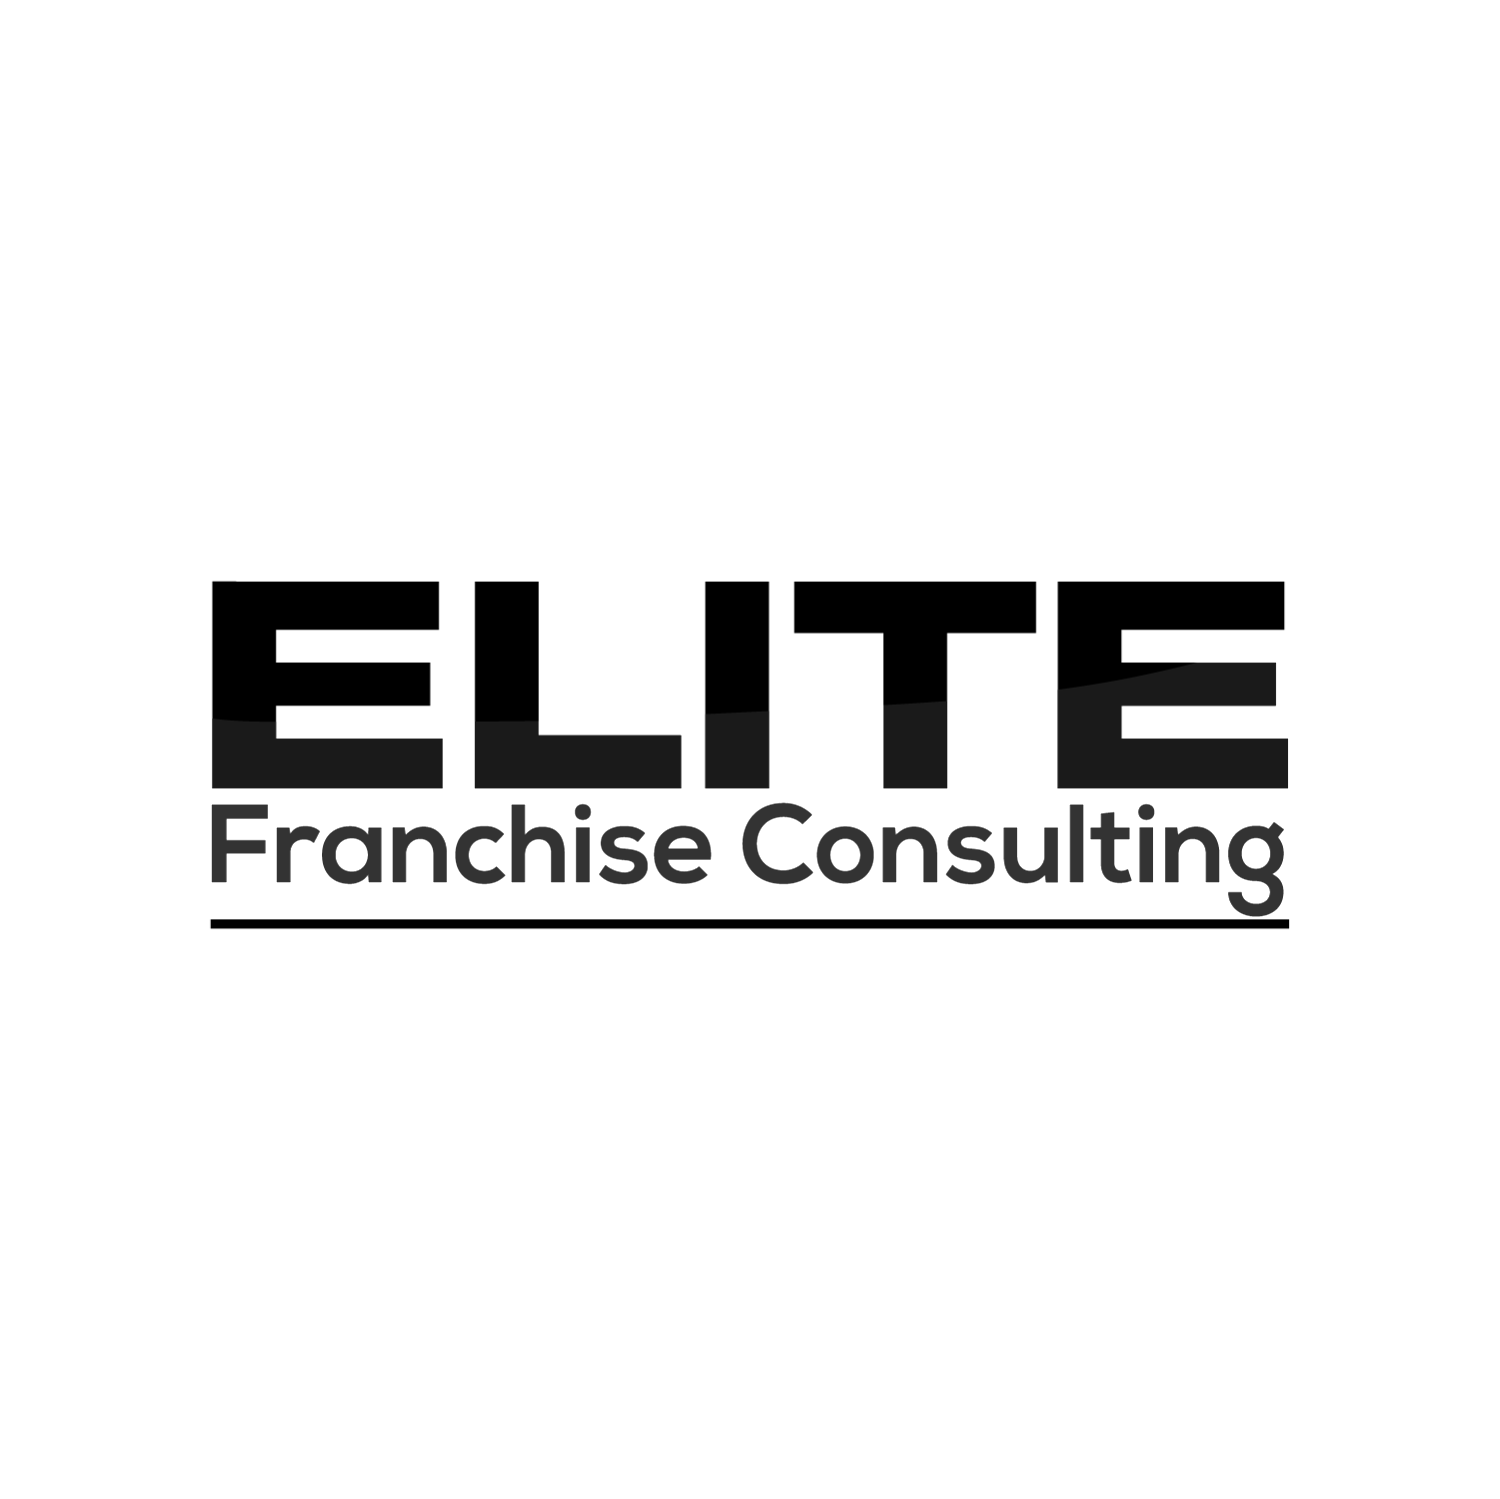 Elite Franchise Consulting